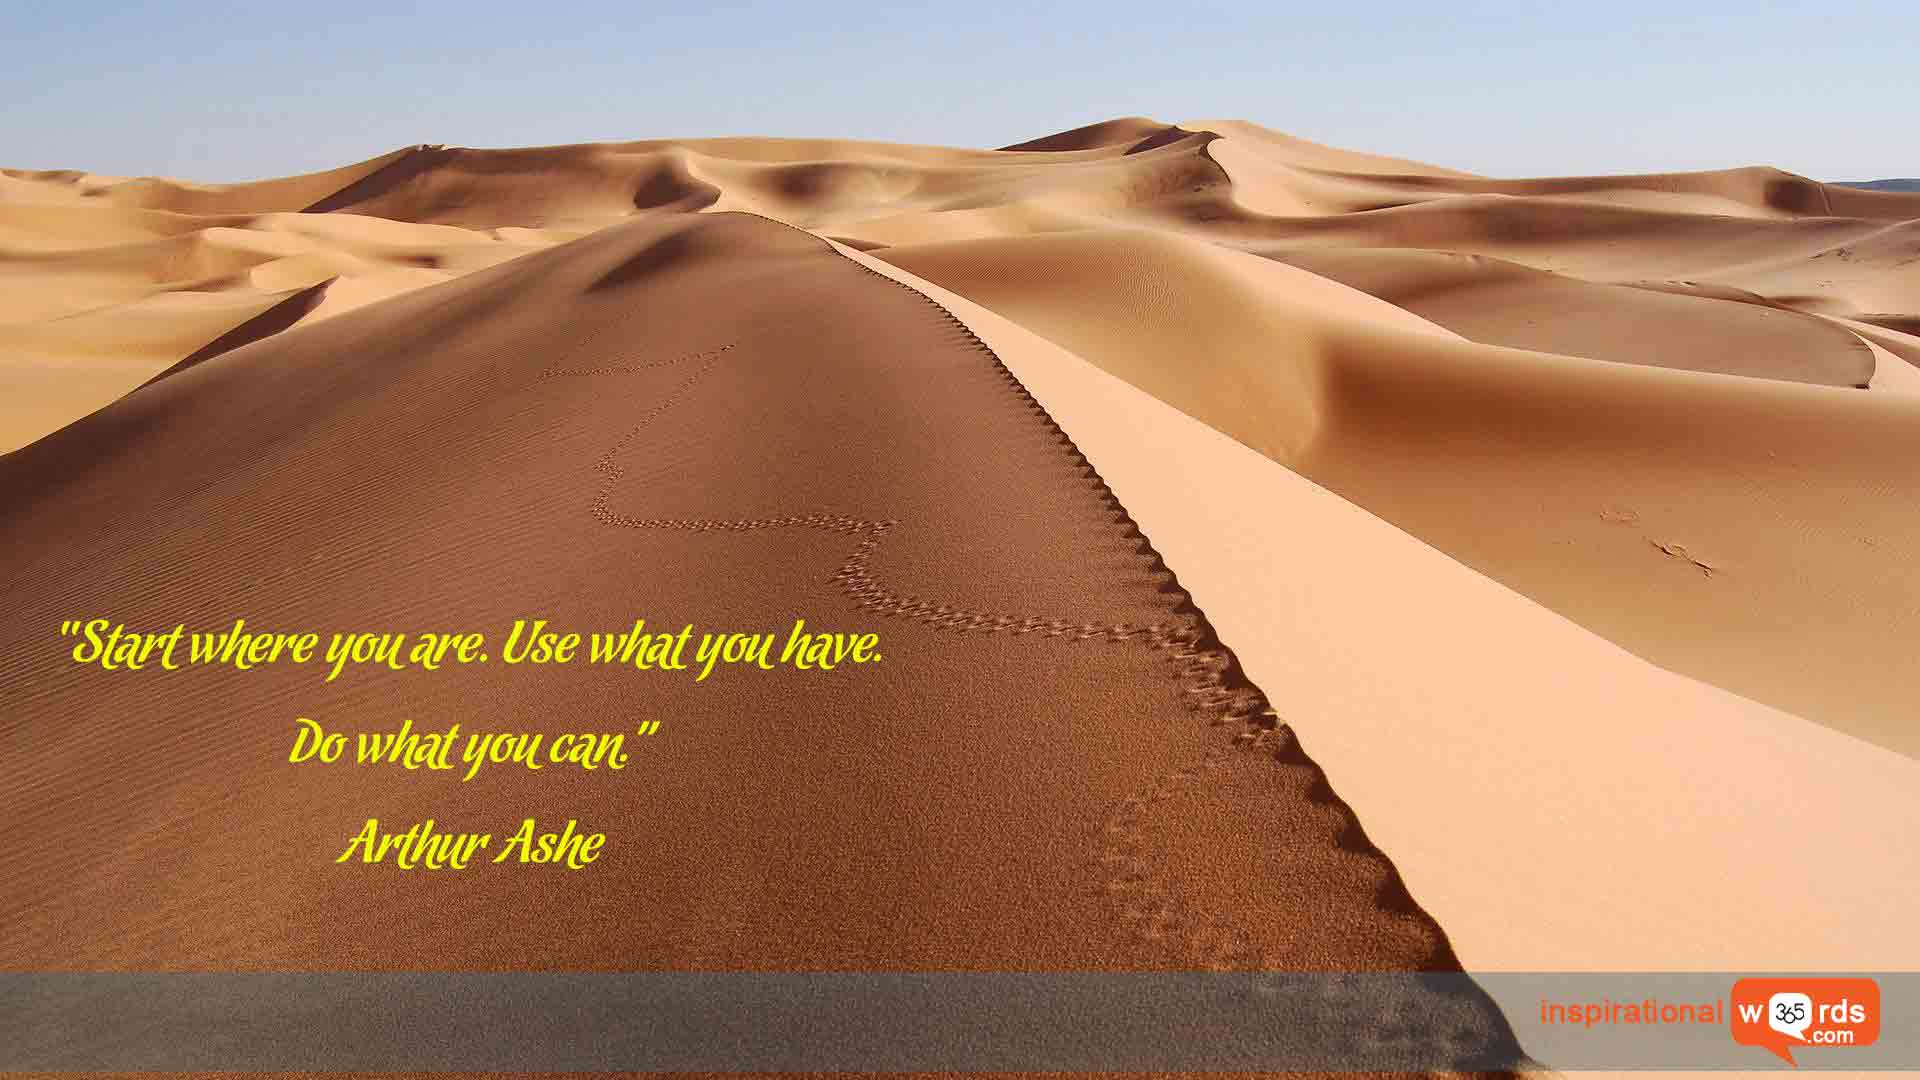 Inspirational Wallpaper Quote by Arthur Ashe